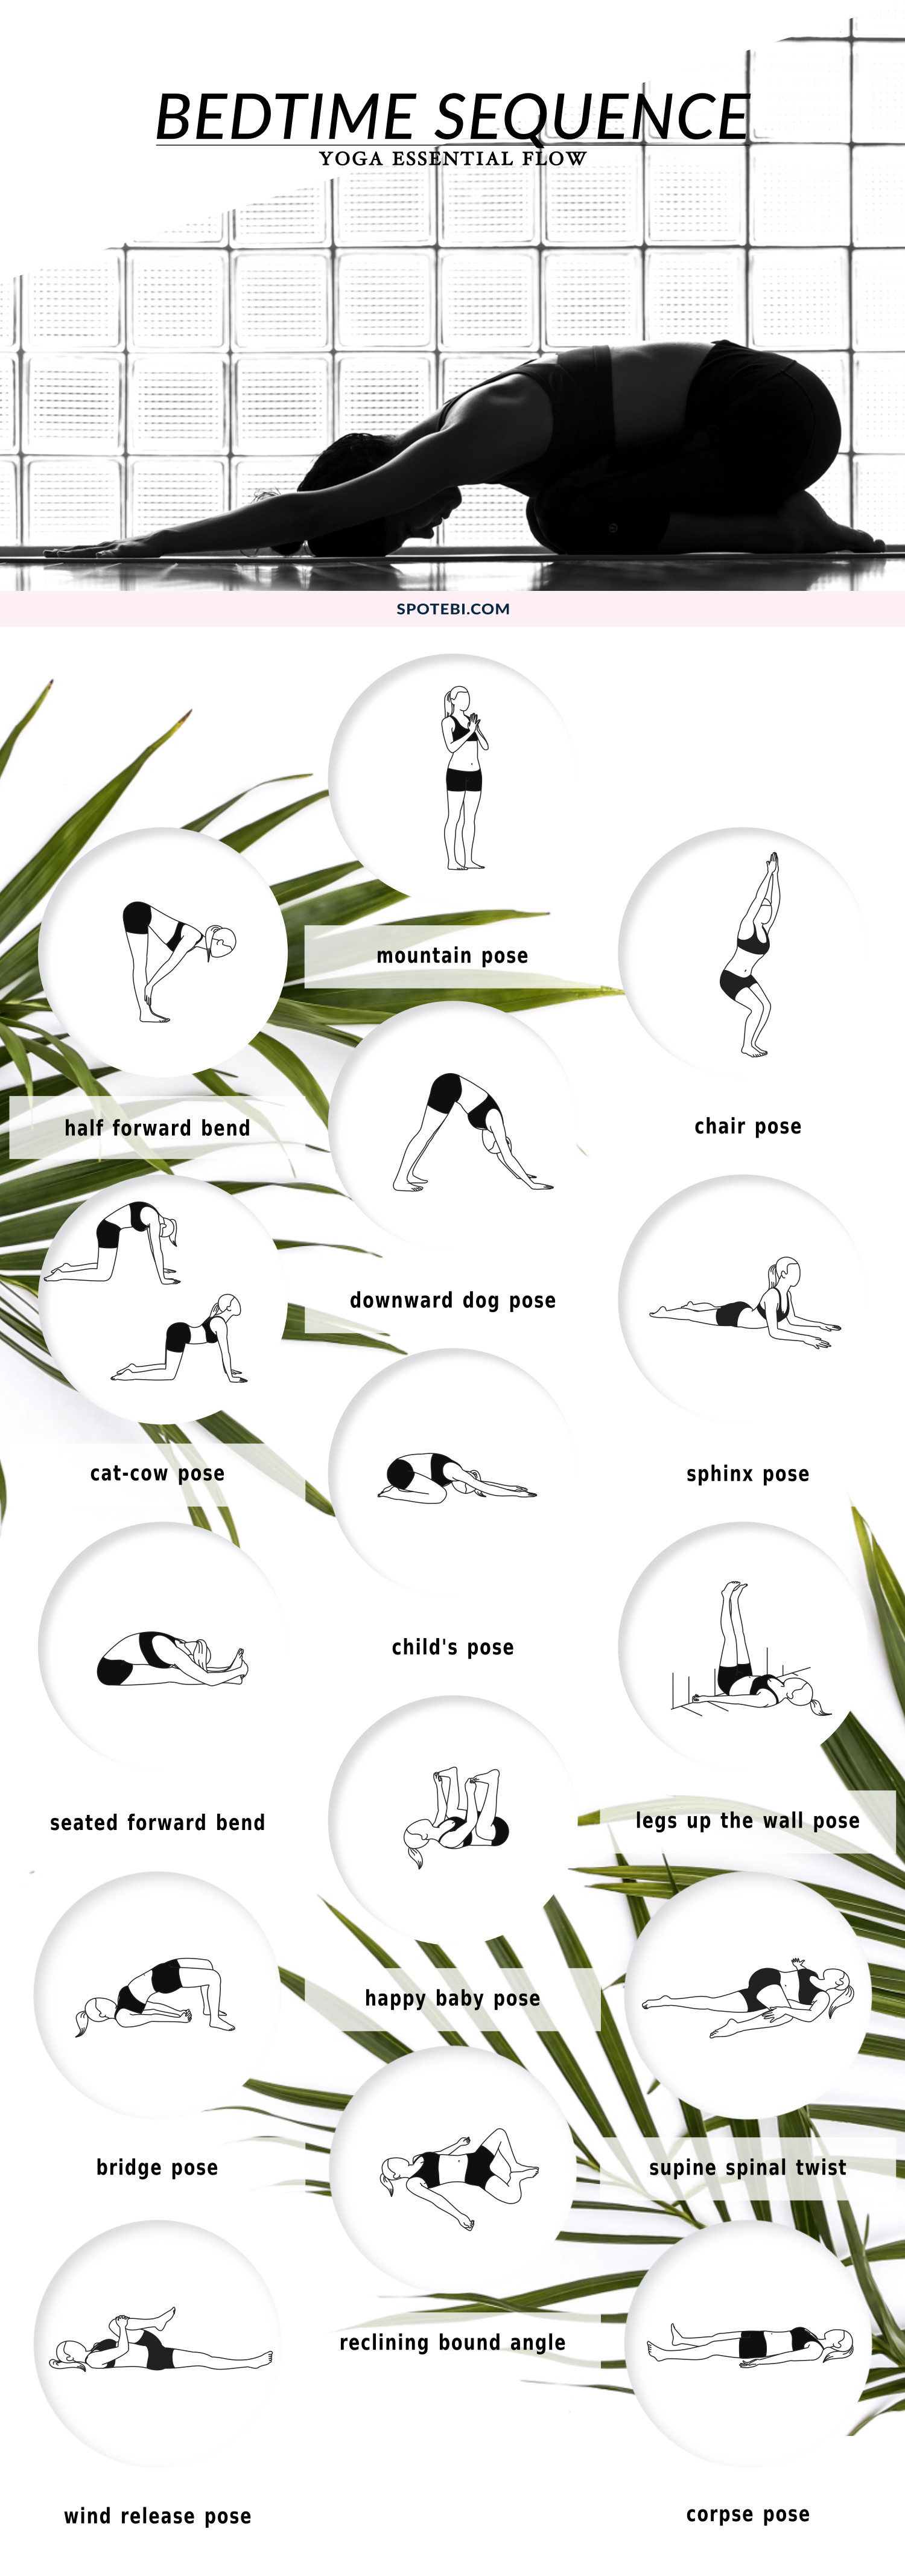 Bedtime soothing sequence yoga essential flow beat insomnia and boost relaxation with our bedtime essential flow a 12 minute yoga sequence geenschuldenfo Choice Image